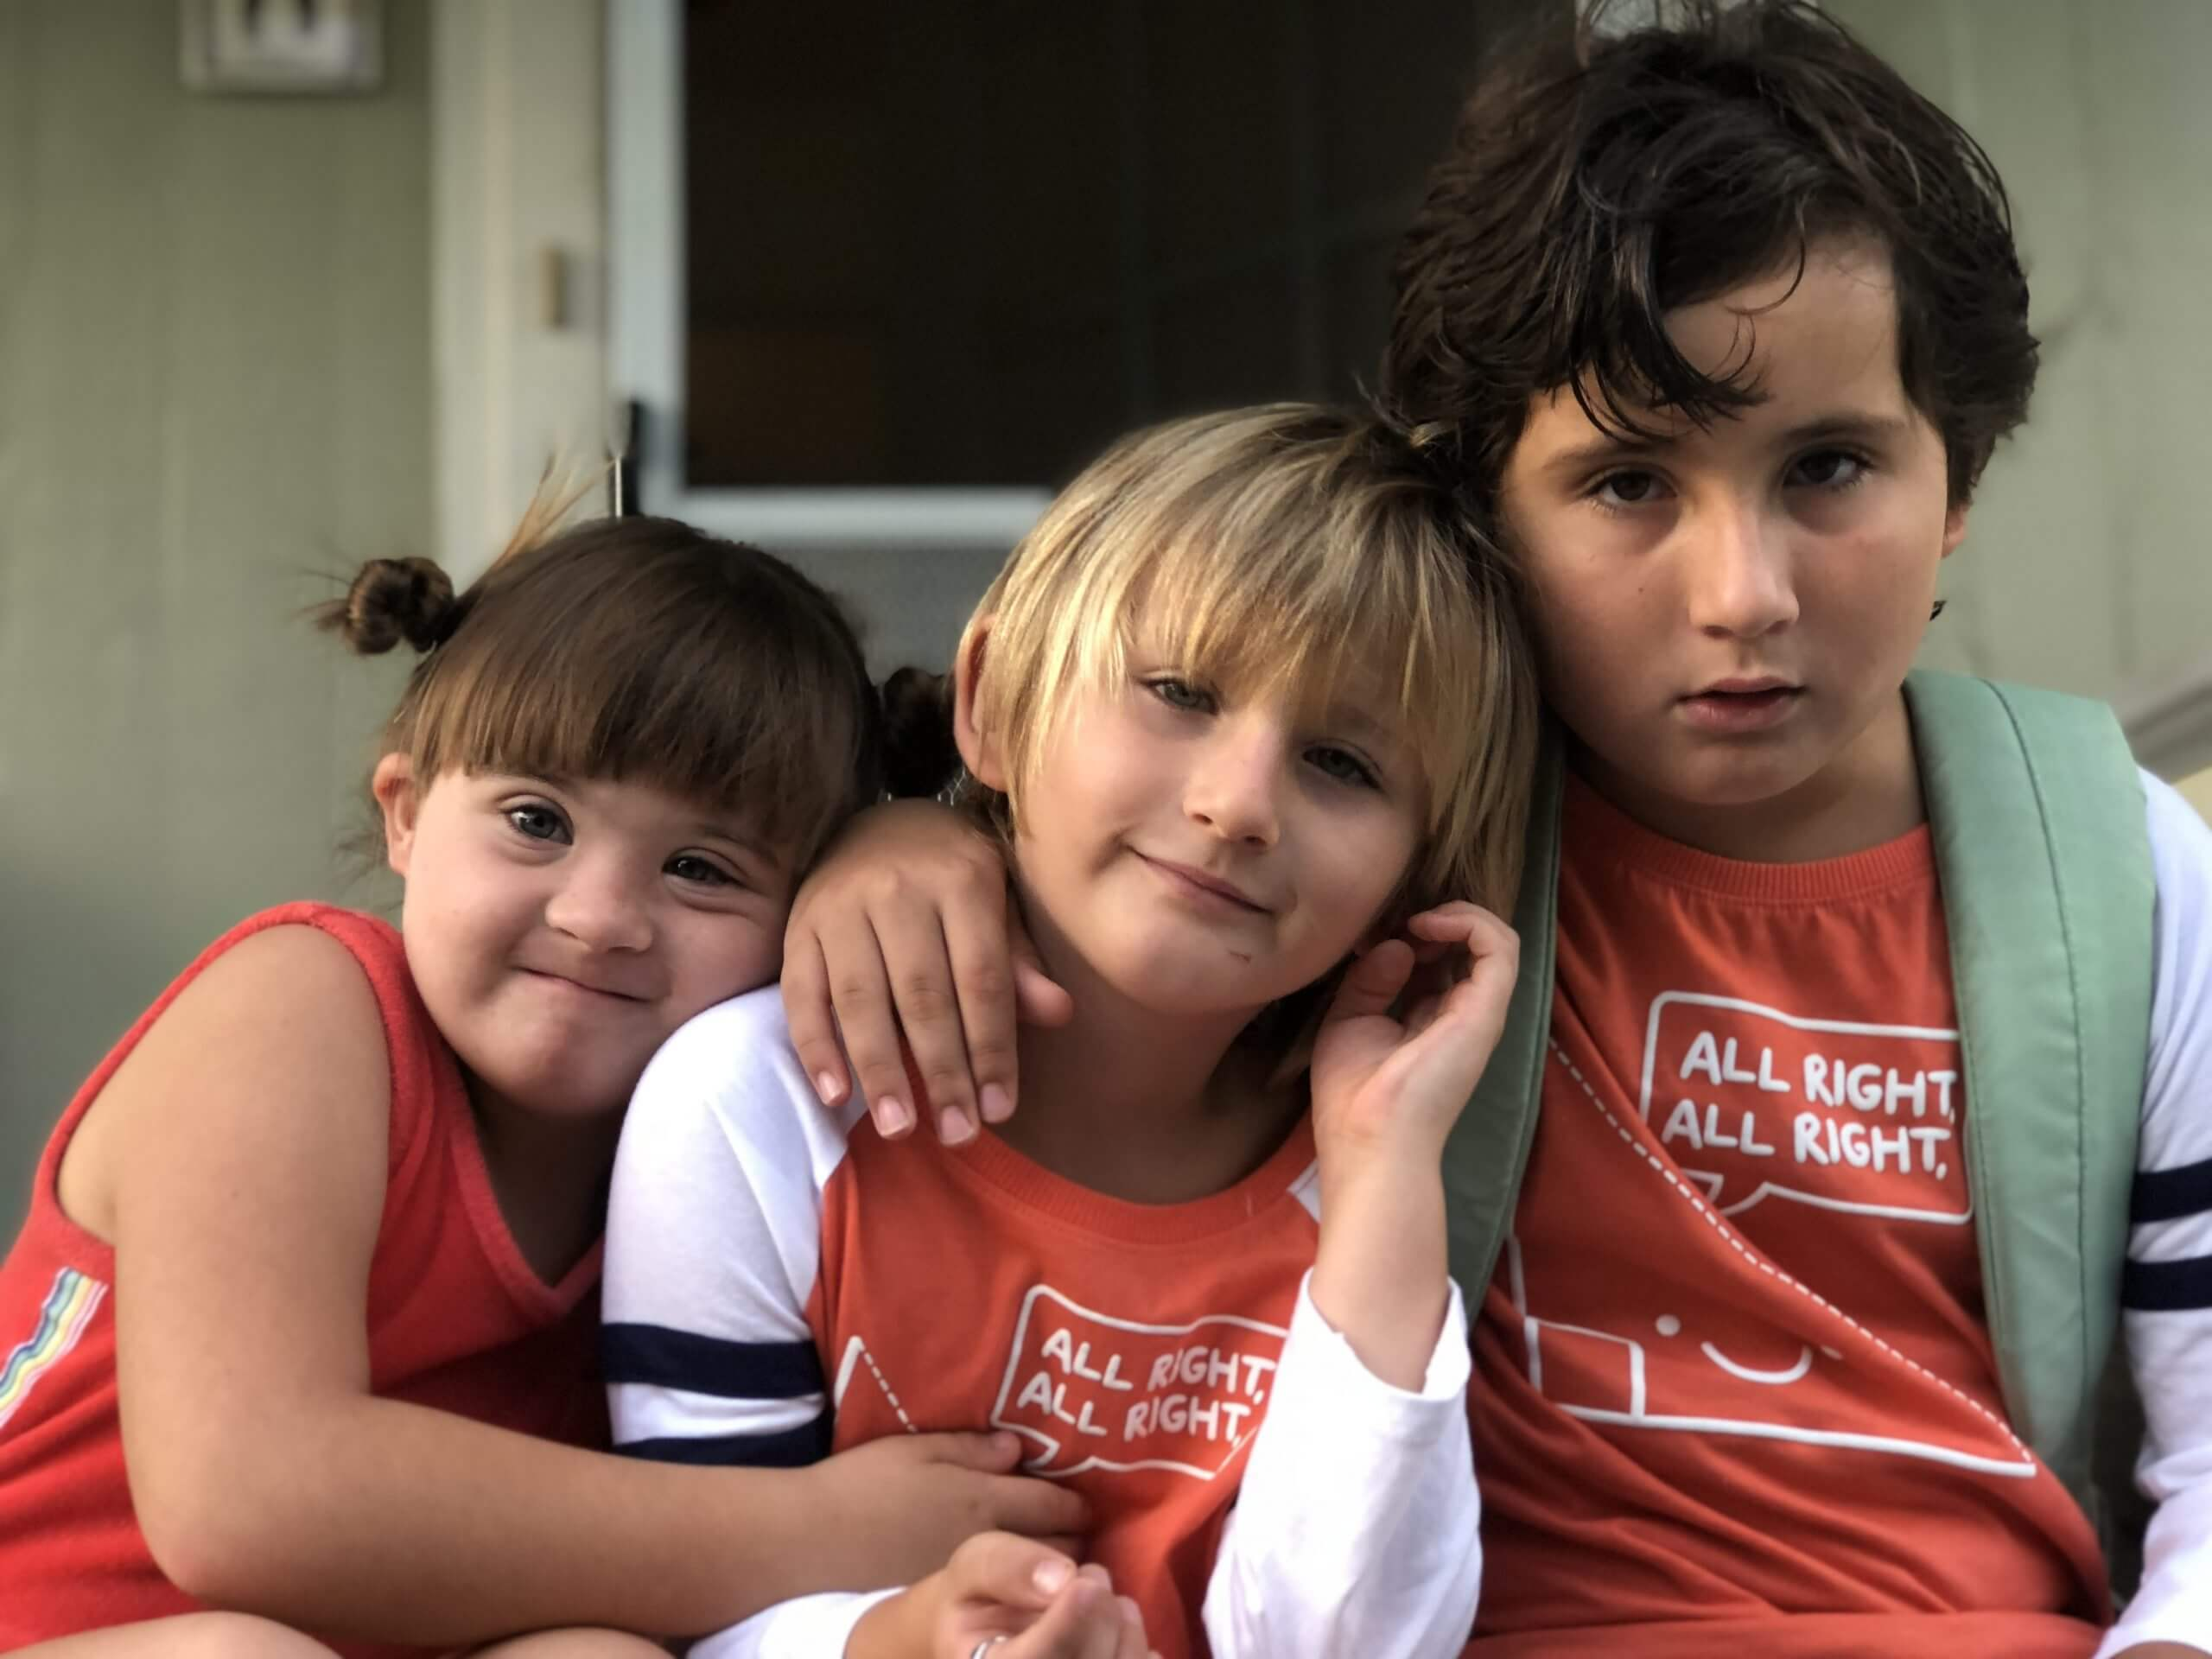 three children sit in front of a green house; they are all wearing orange shirts